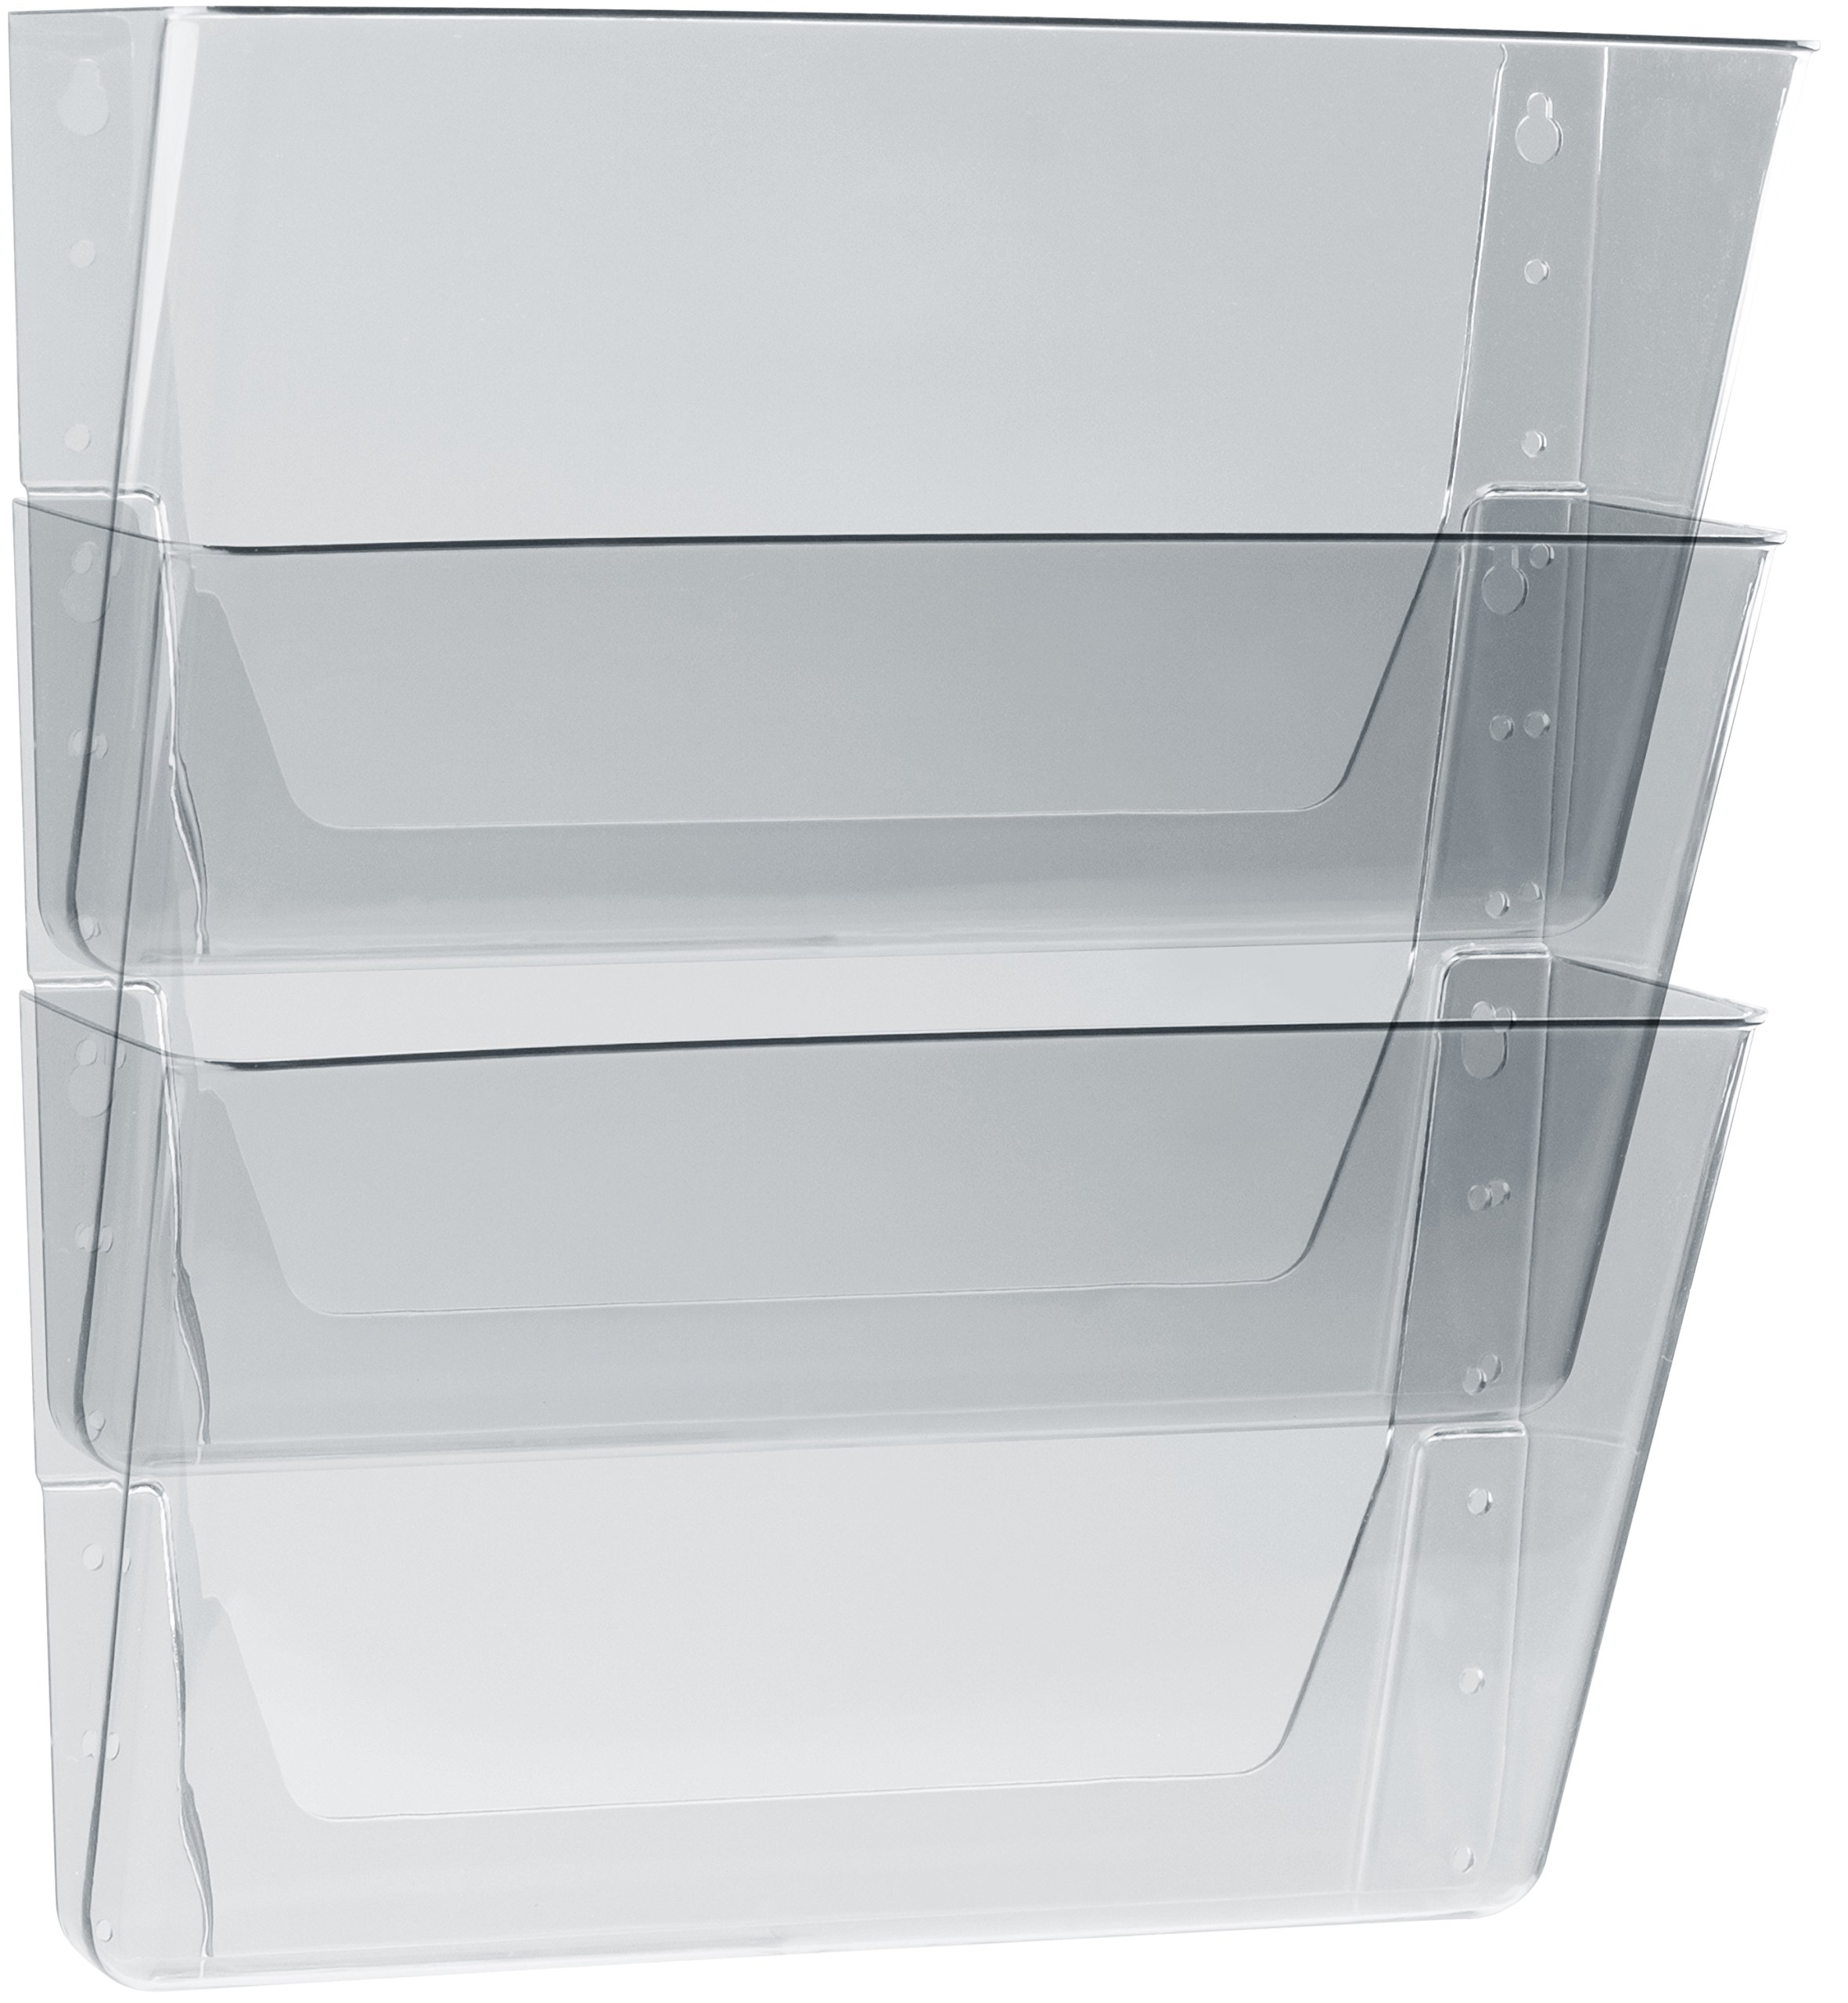 Storex Unbreakable Letter Sized Wall Files, 3-Pack, Clear, Case of 6 (STX70313U06C)